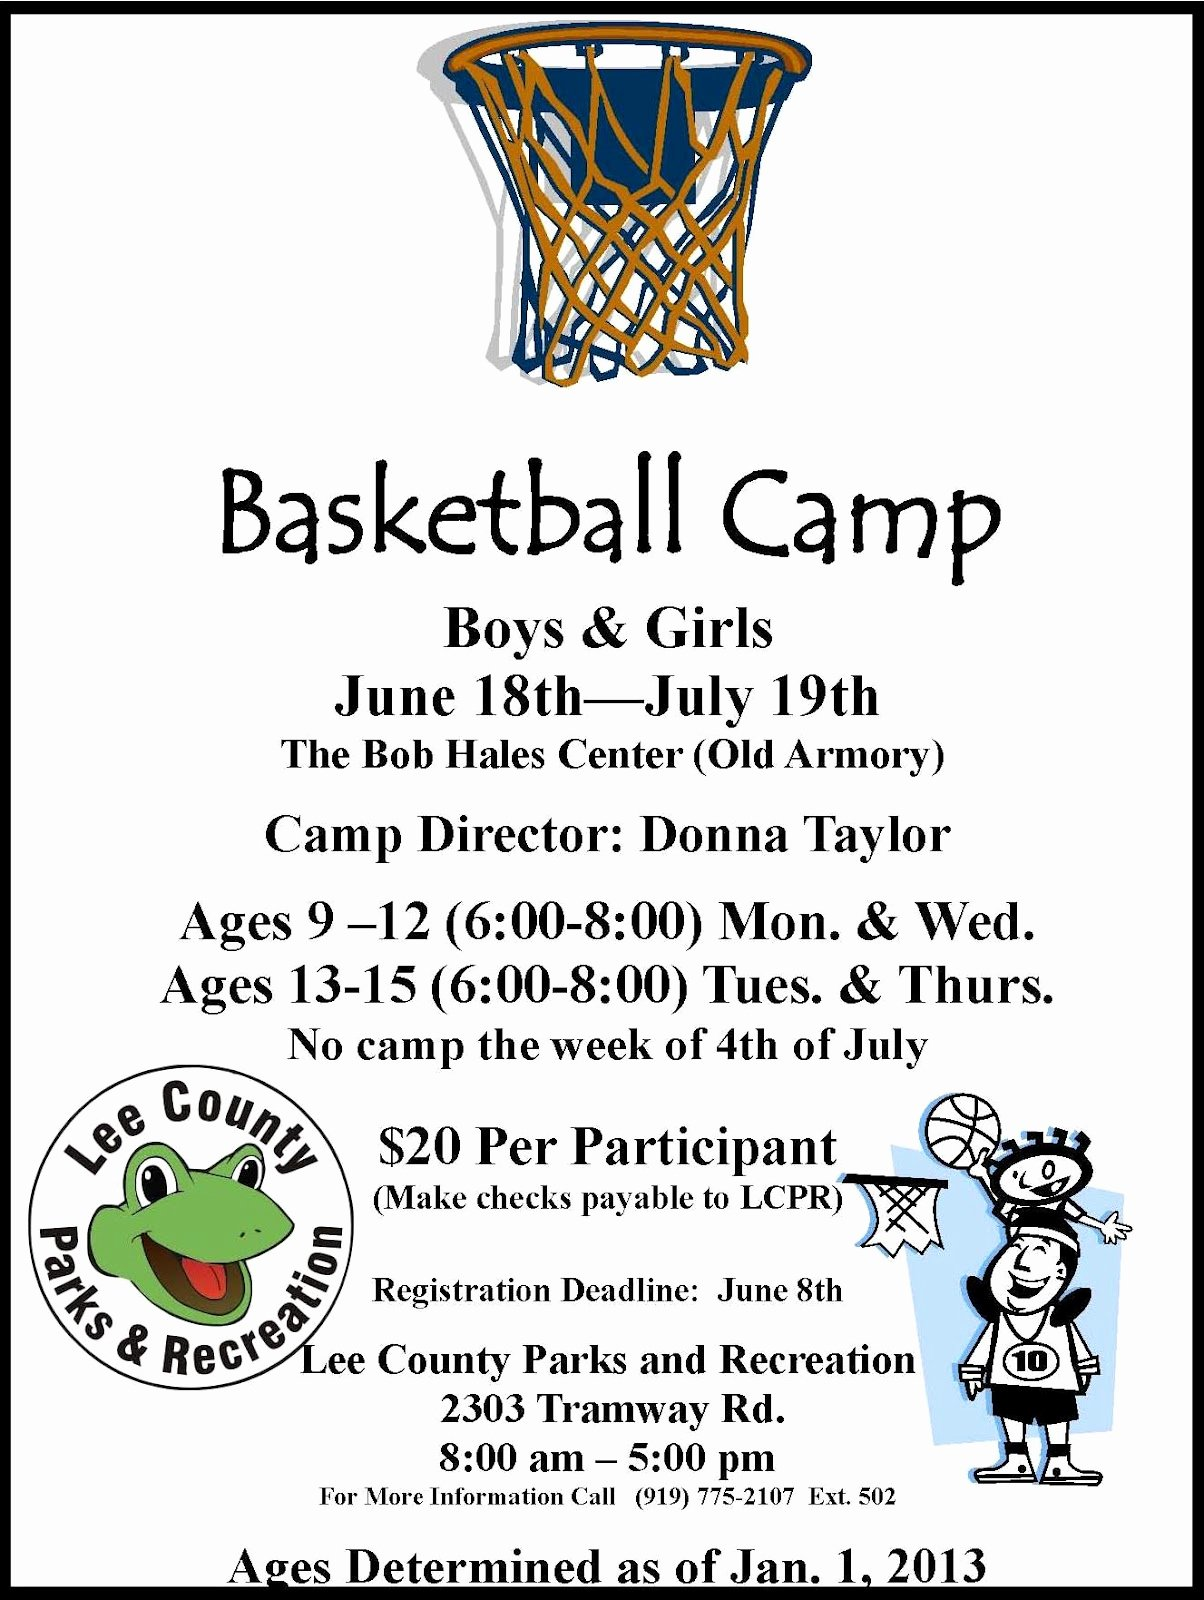 Basketball Camp Flyer Template Fresh Lee County Government Basketball Camp